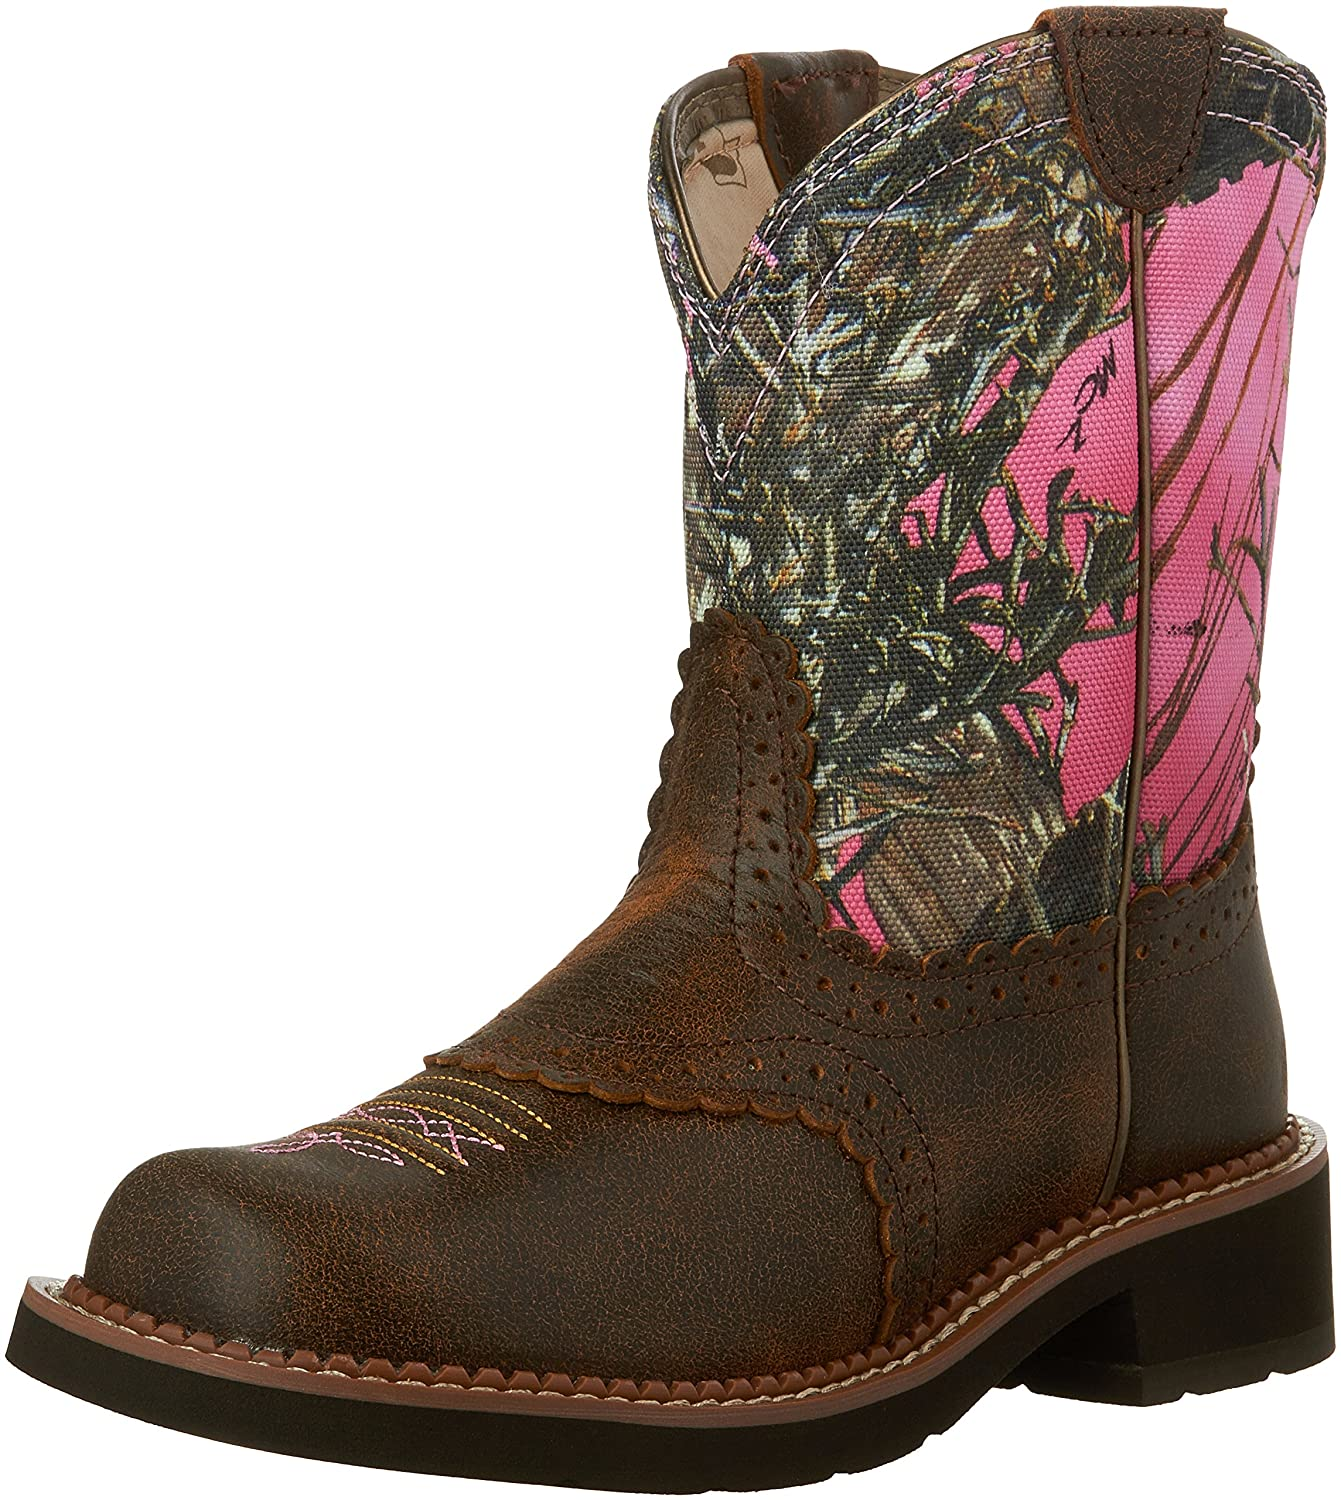 Ariat Women's Fatbaby Collection Western Cowboy Boot B00OQ299L4 7 B(M) US|Vintage Bomber/Pink Camo